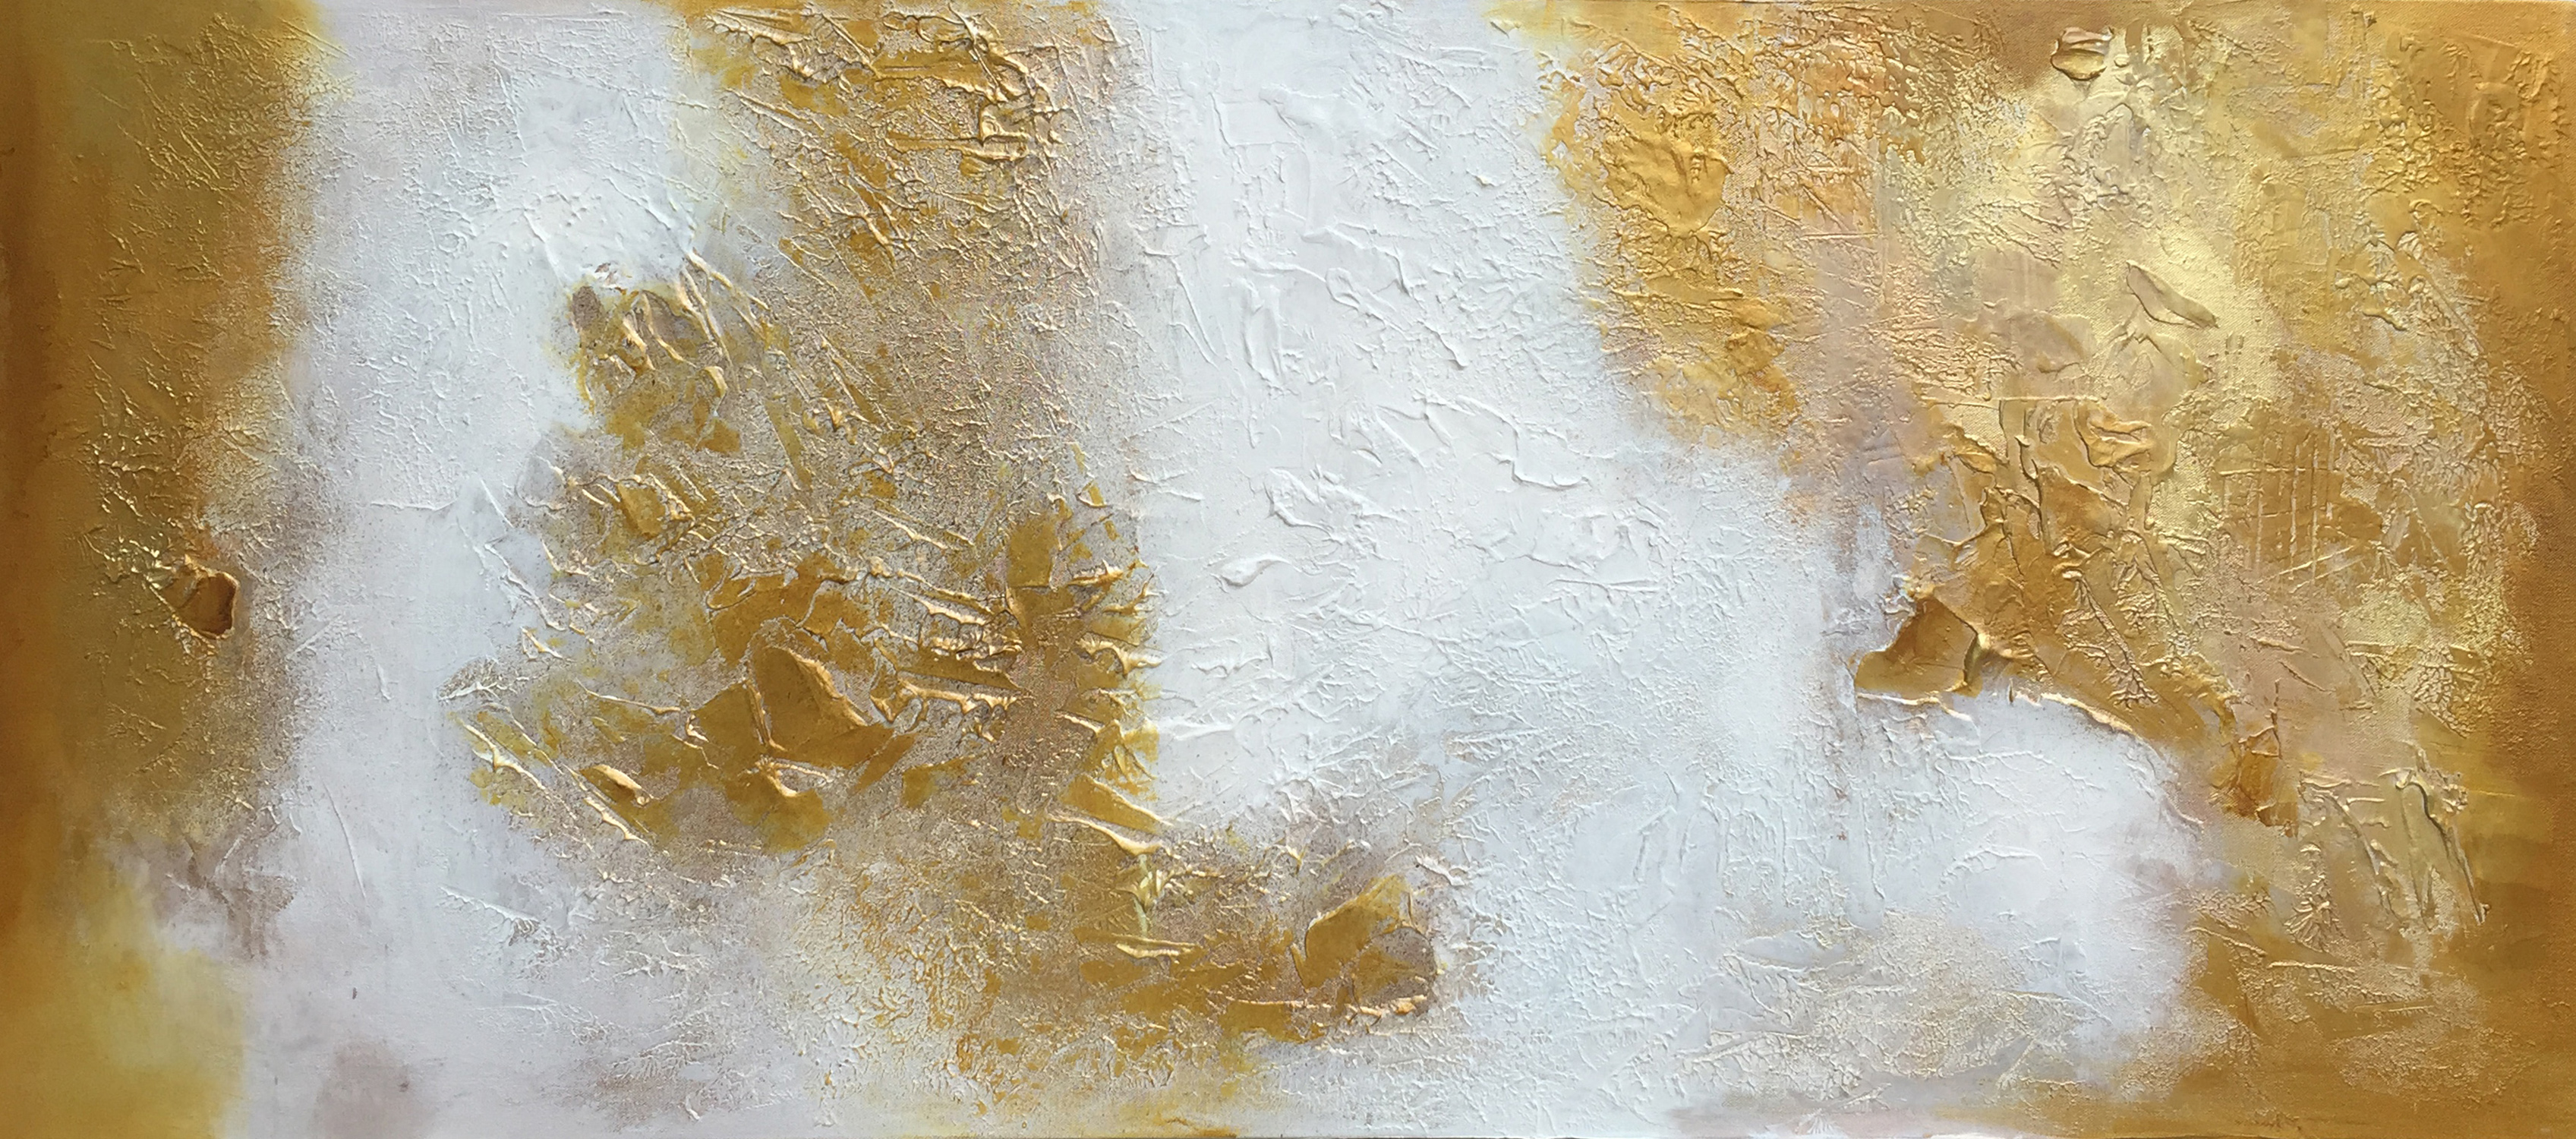 Poetry in Gold 36 -- 24 x 54